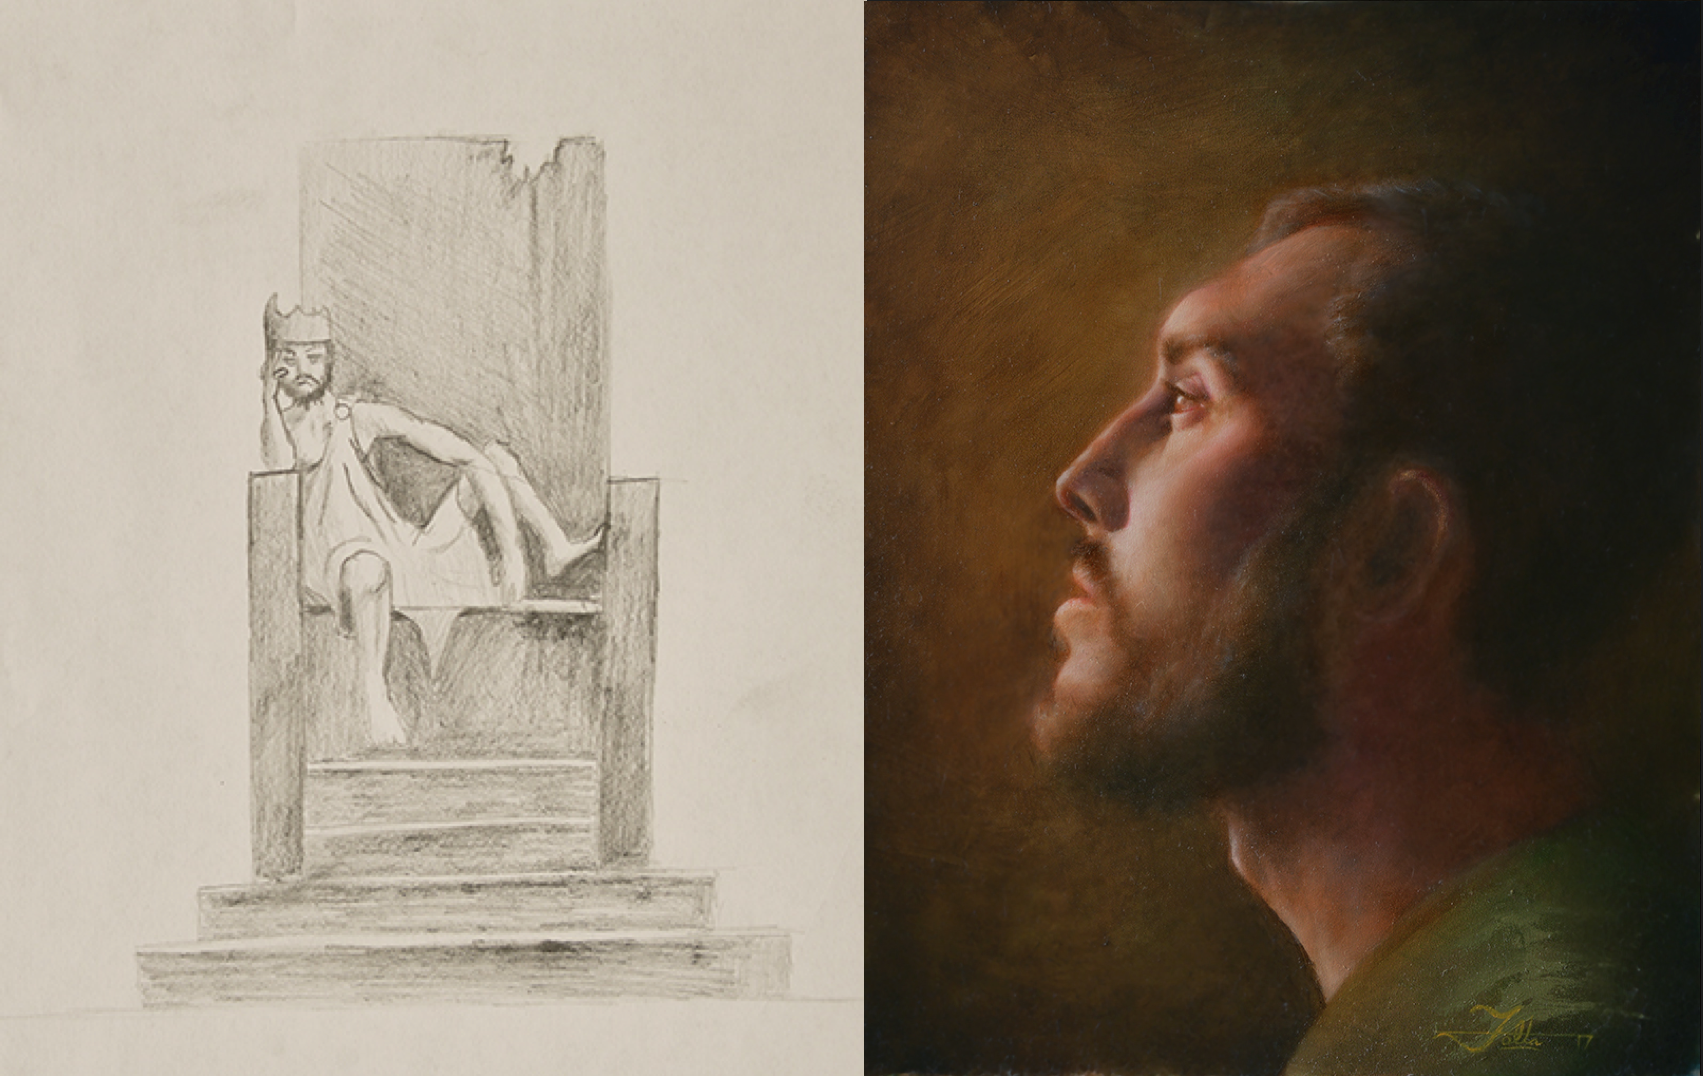 Daniel Folta's Before and After in his journey of art